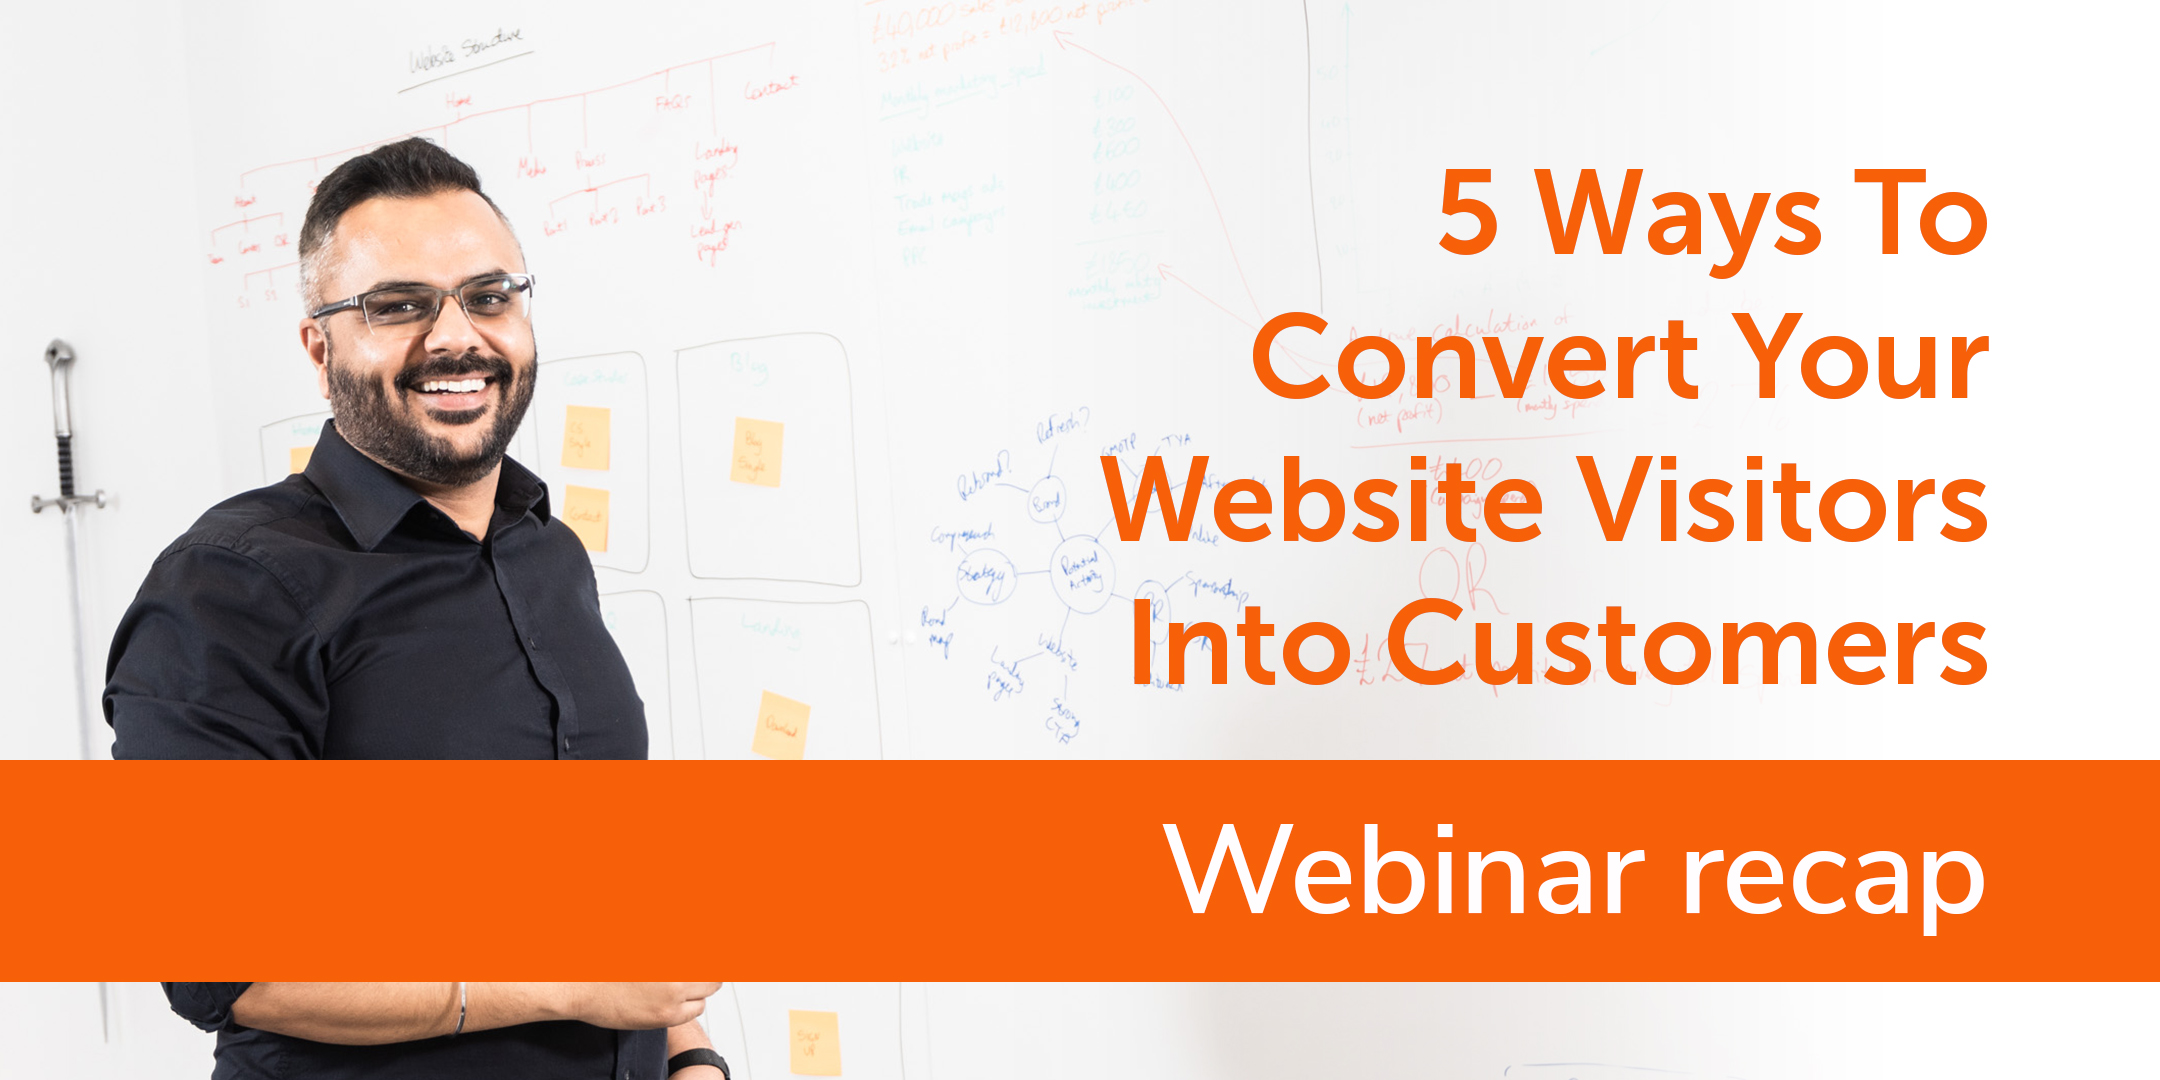 5 Ways To Win More Business From Your Website - Webinar Recap